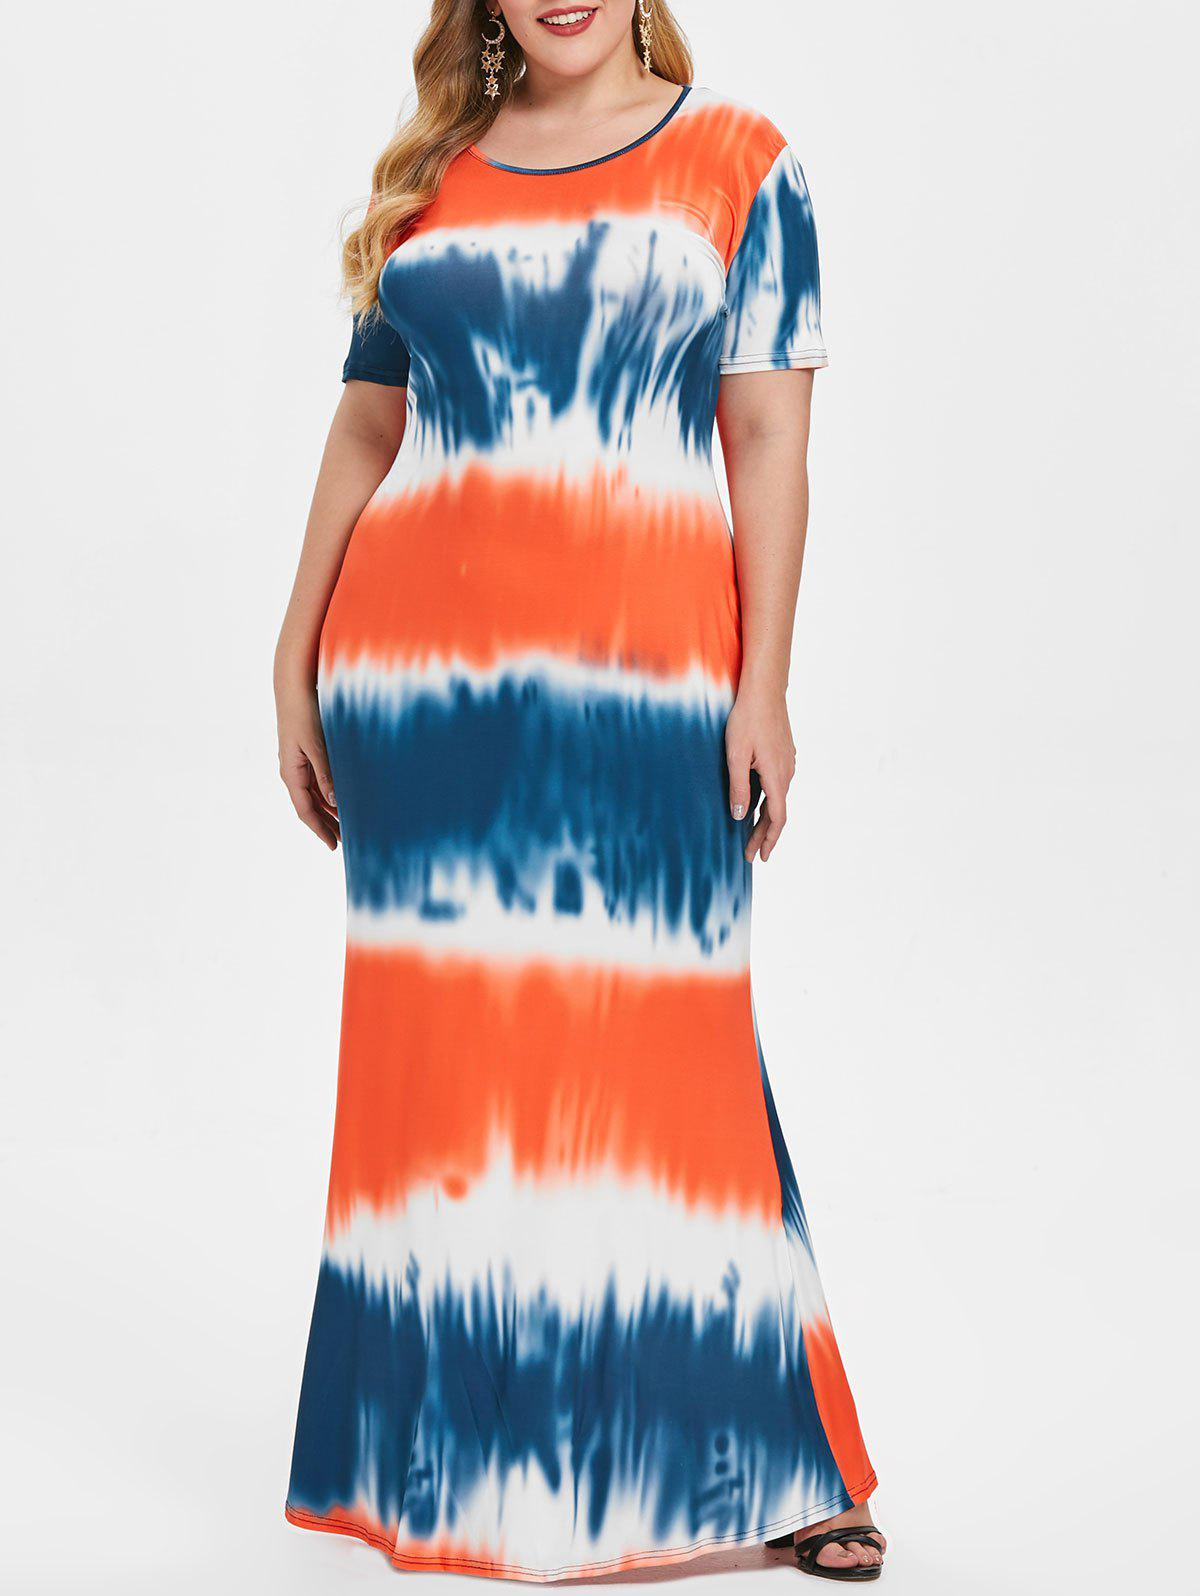 Affordable Round Neck Plus Size Tie Dye Maxi Dress